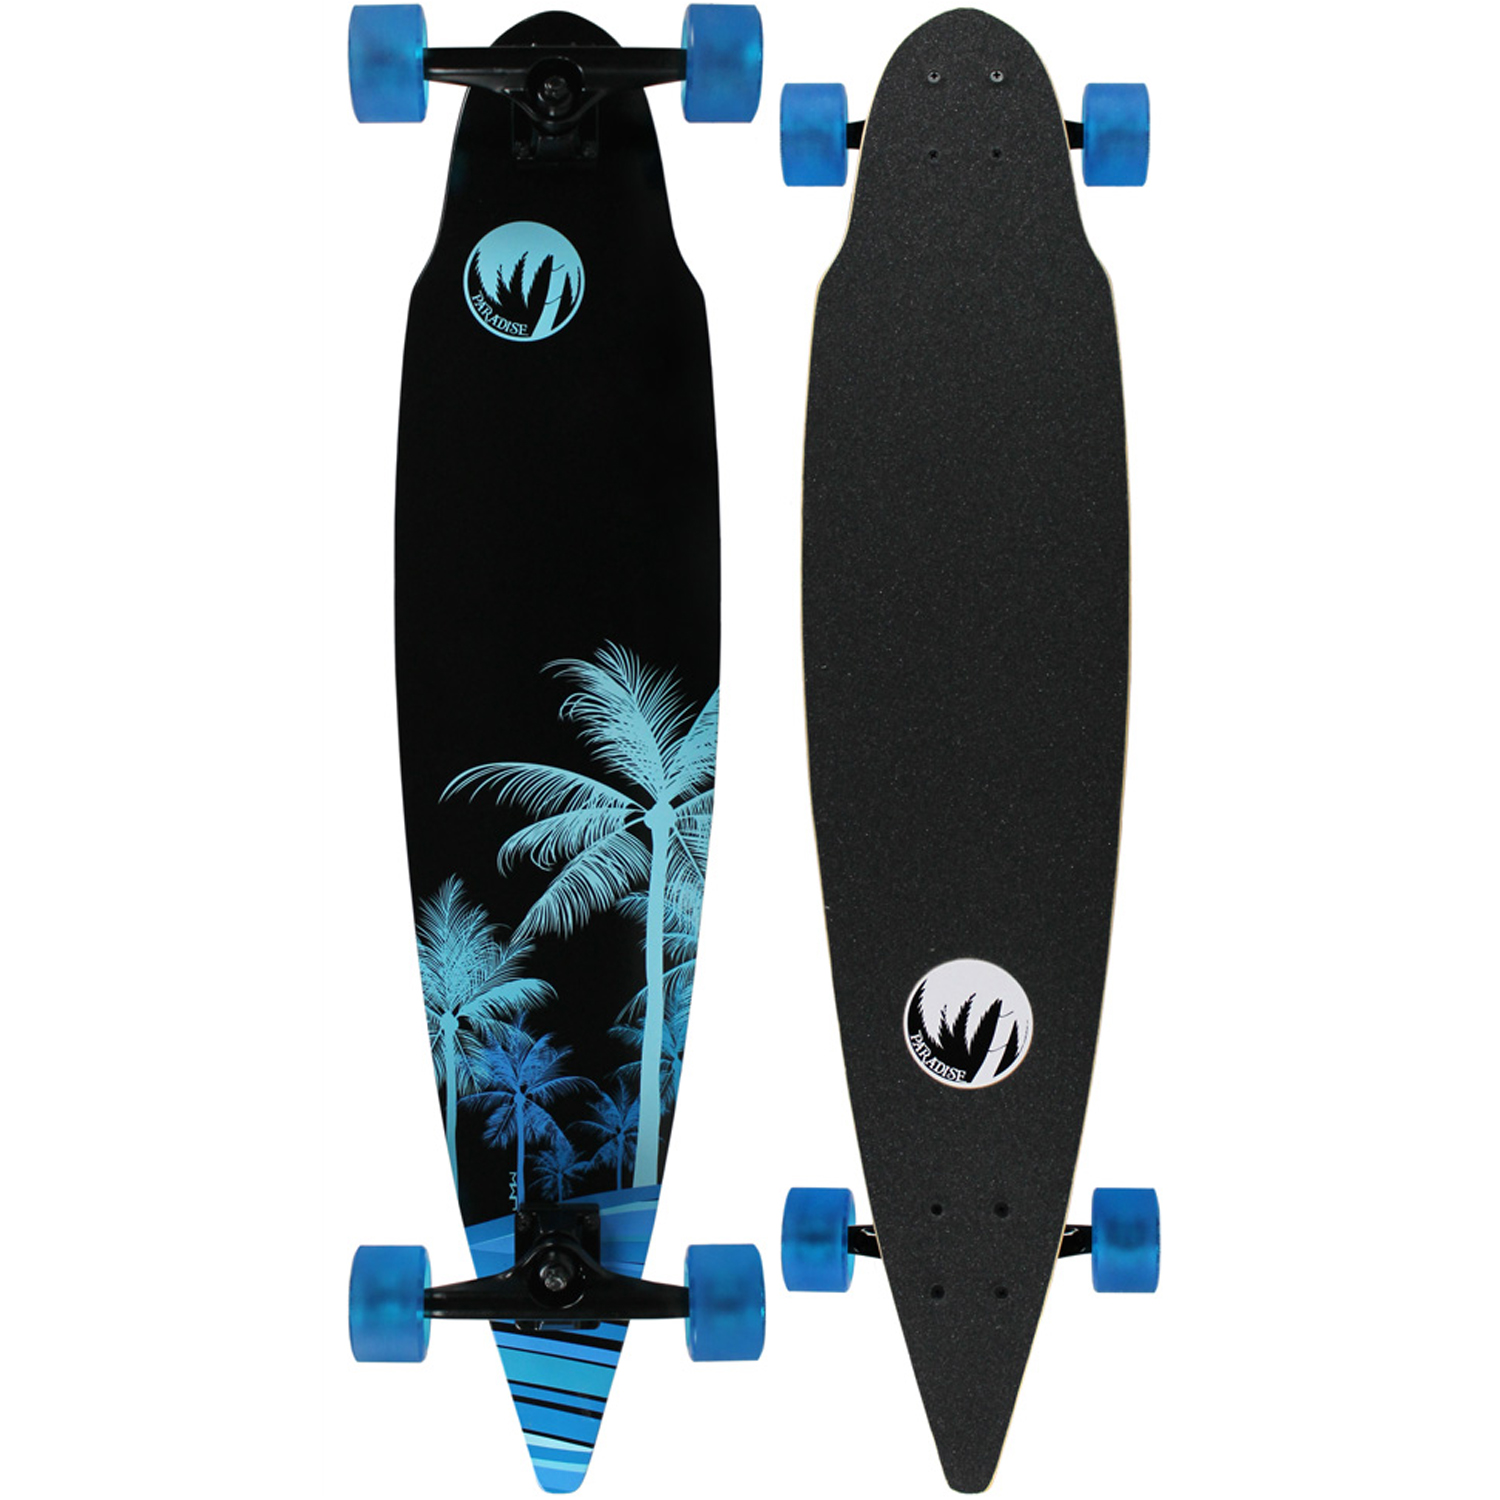 PARADISE Longboard Complete WAVE PALMS PINTAIL COMPLETE 8.5 X 38